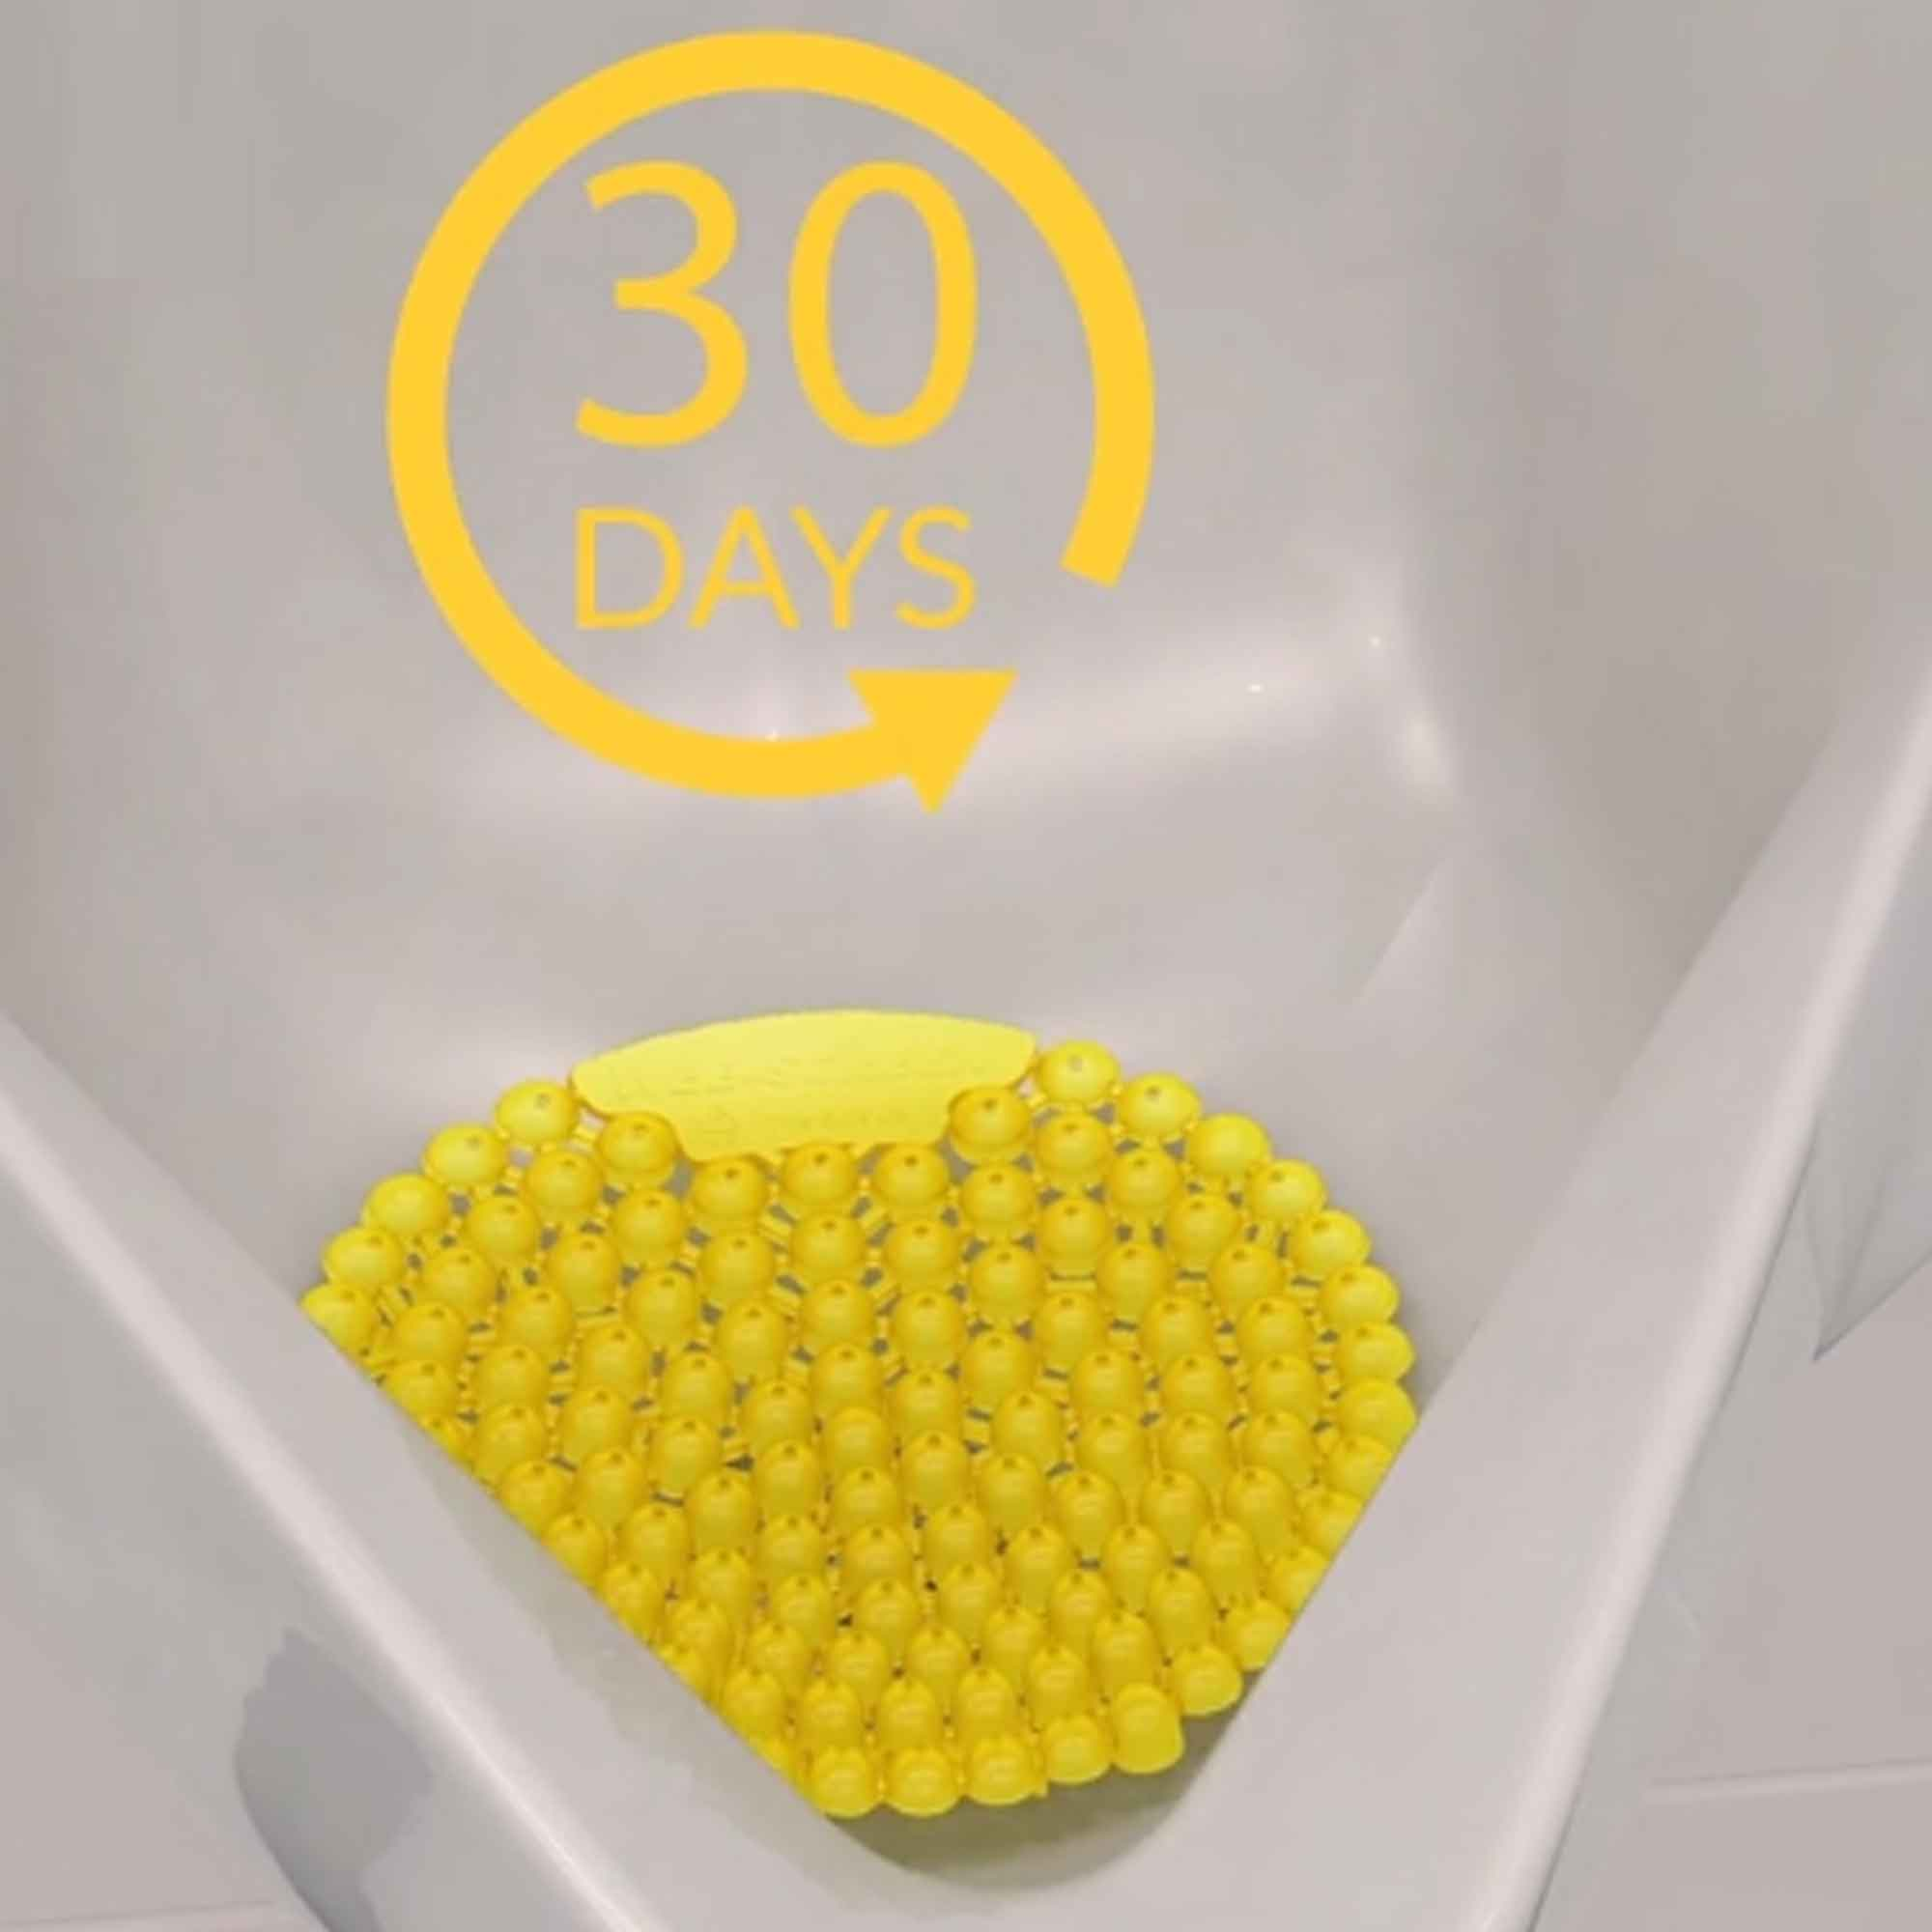 Wee-Screen® 30 Day Urinal Screen in urinal